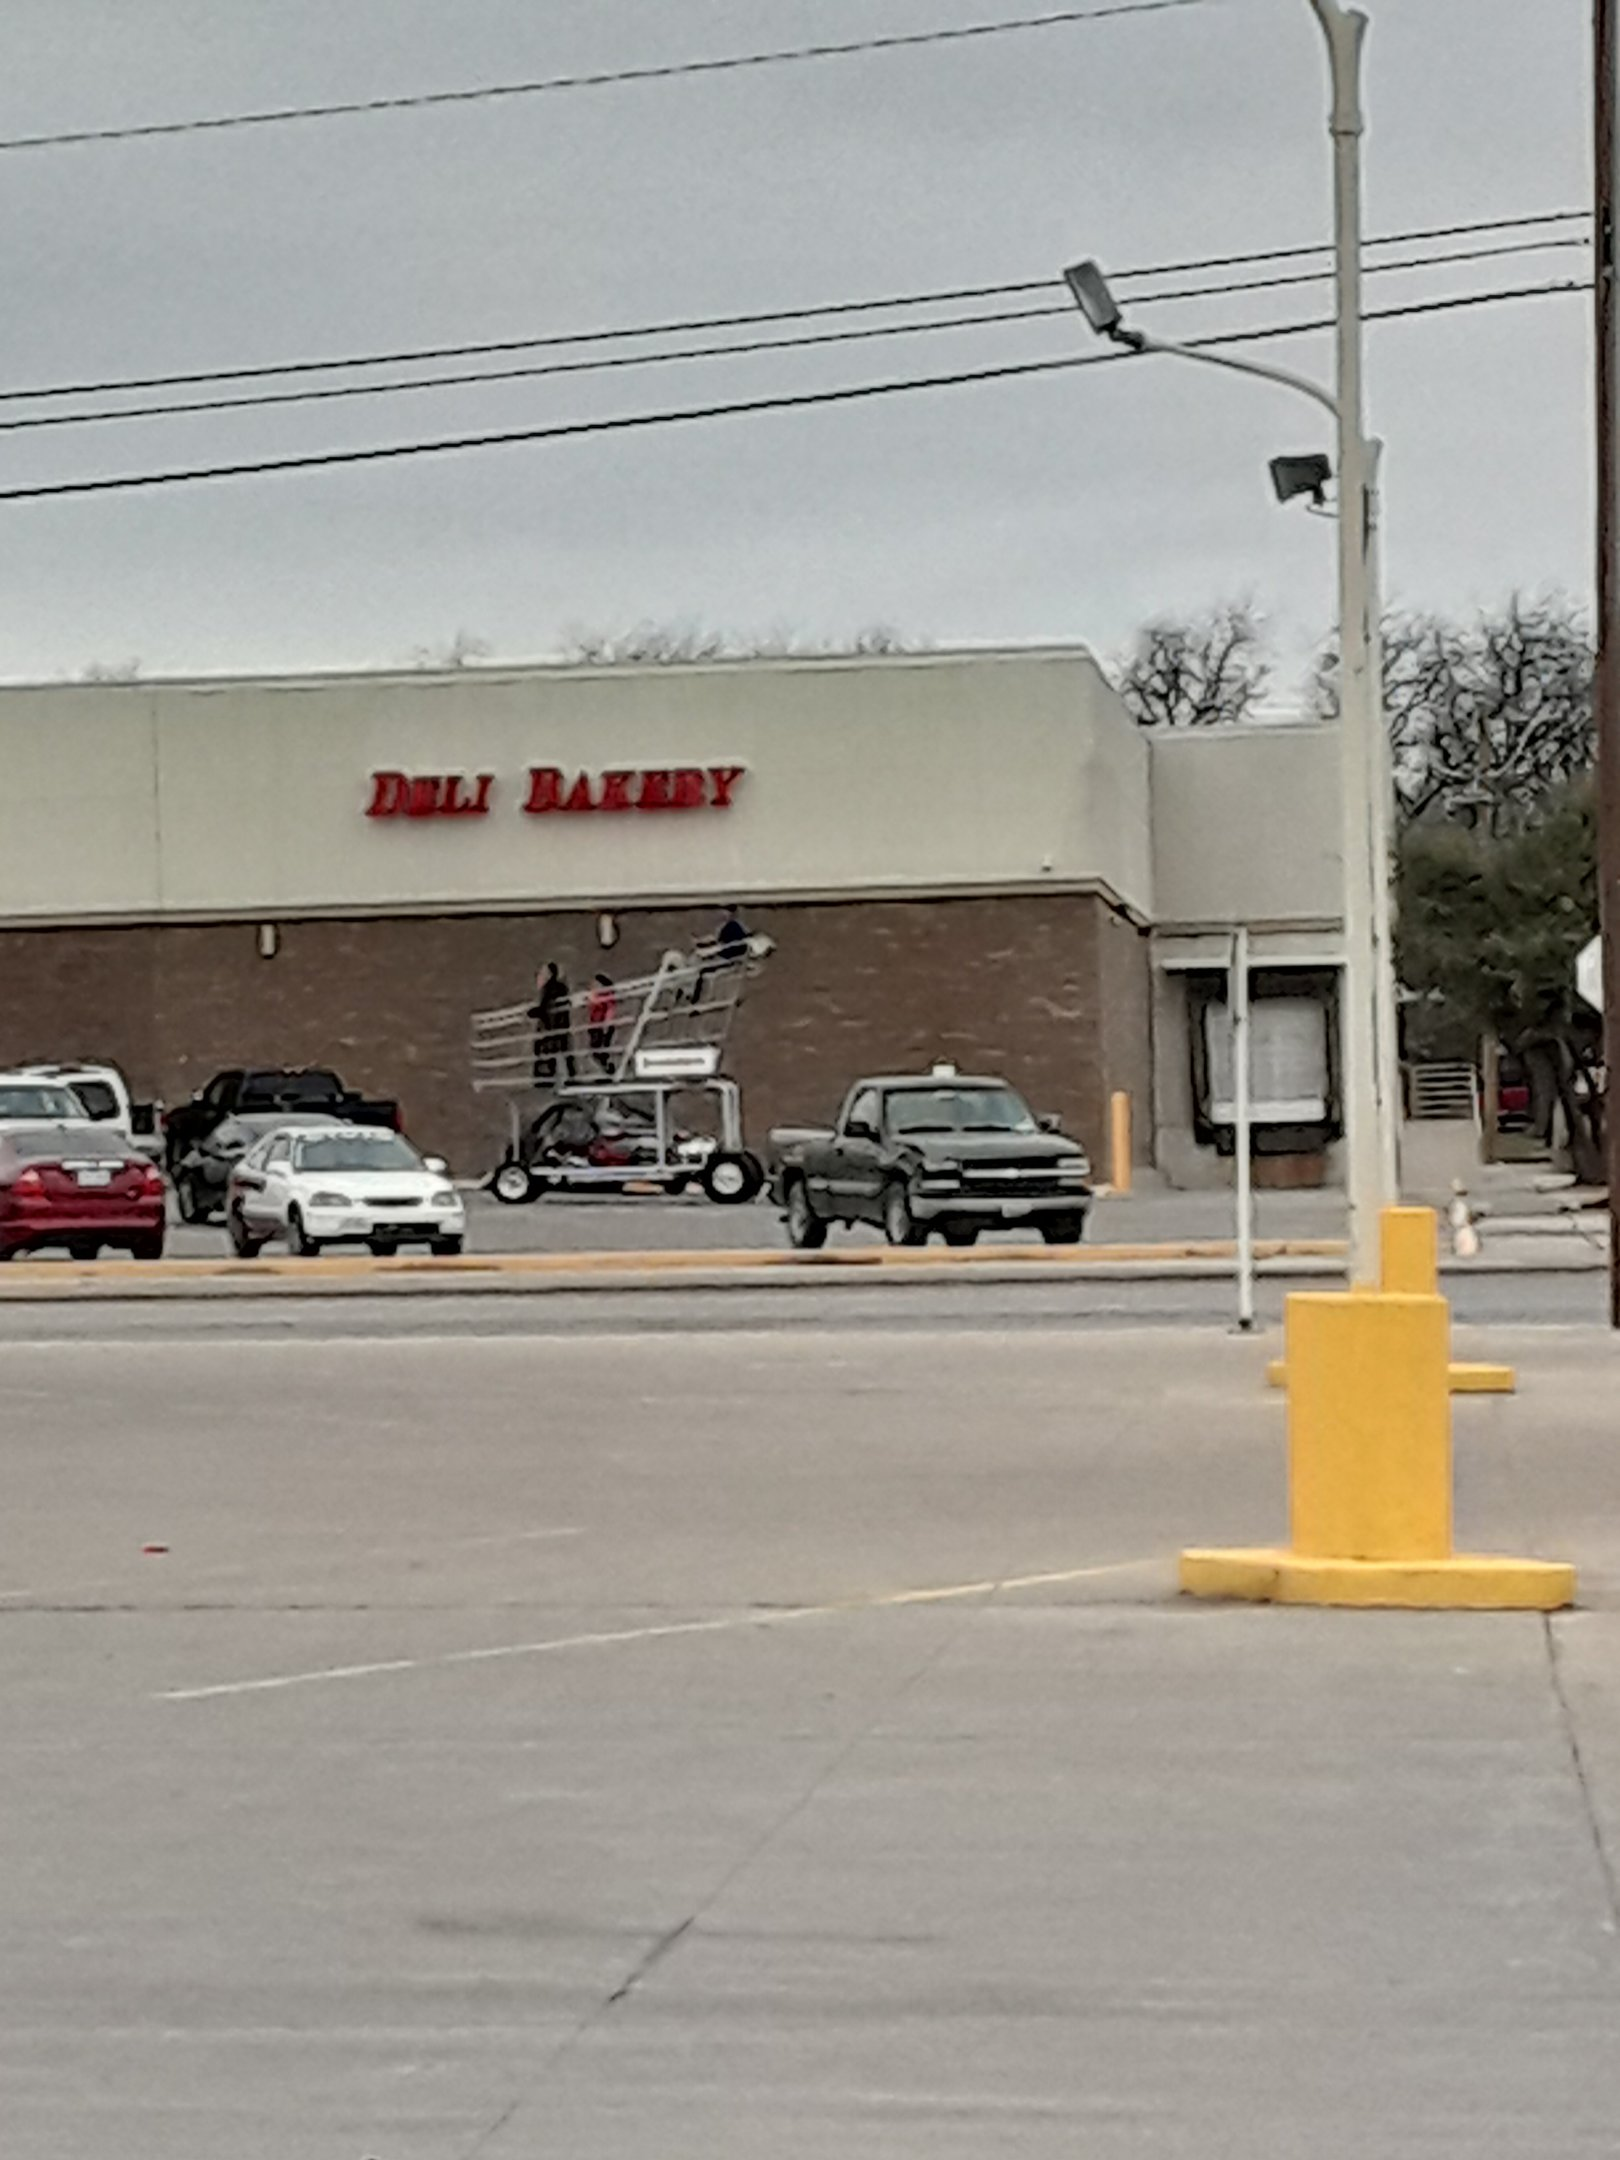 20190307_124029-jpg.49414_Everythings bigger in Texas_People & Cultures_Squat the Planet_10:49 AM